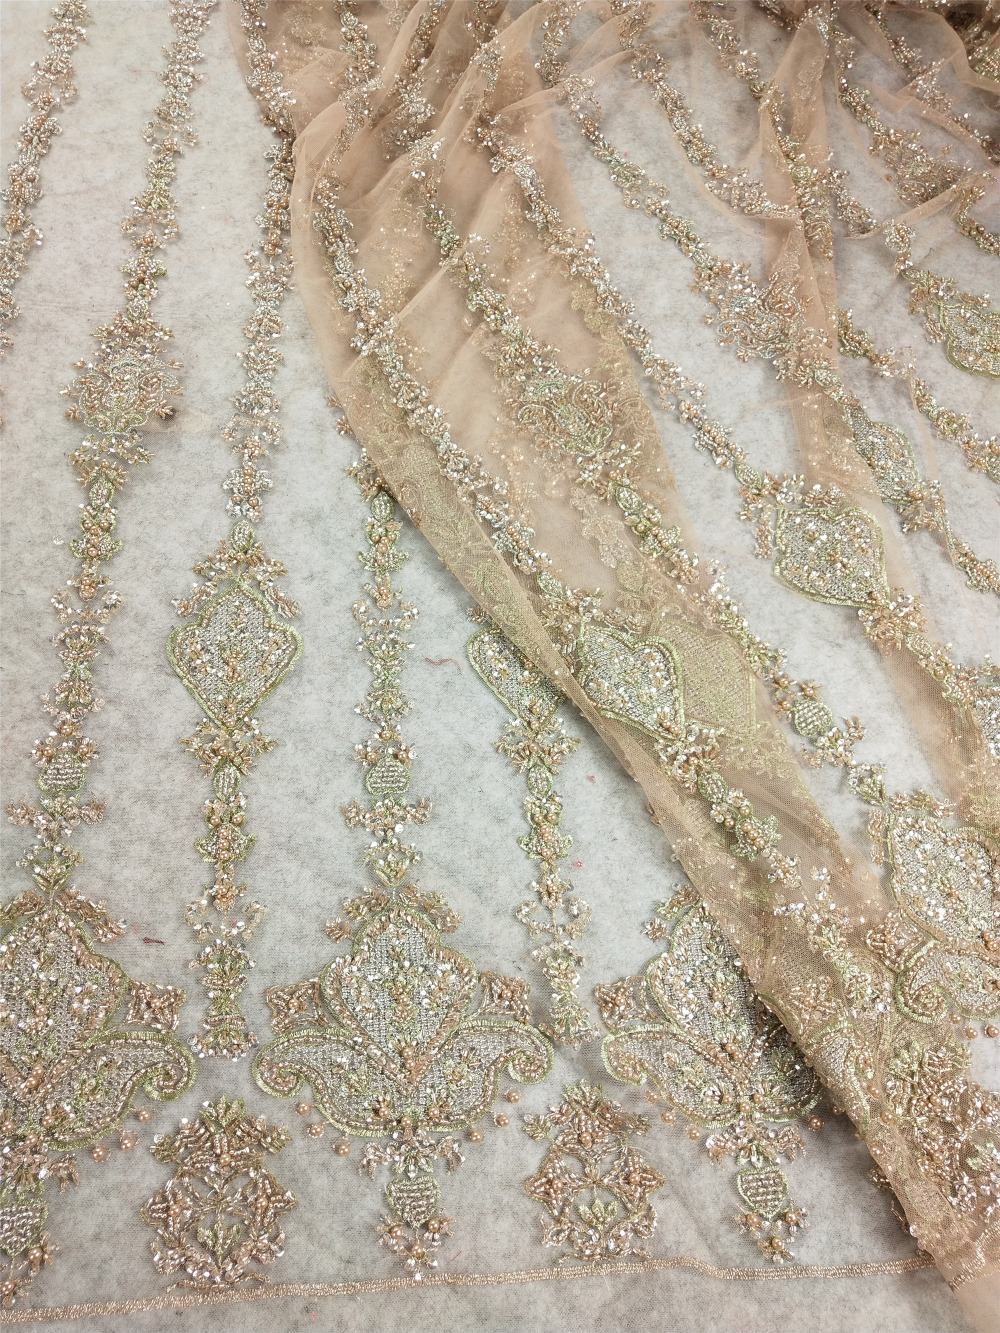 French lace fabric 5yds/pce by dhl gold hand heavy beads&sequins fabrics for women gorgeous dresses high qaulity designs 2019